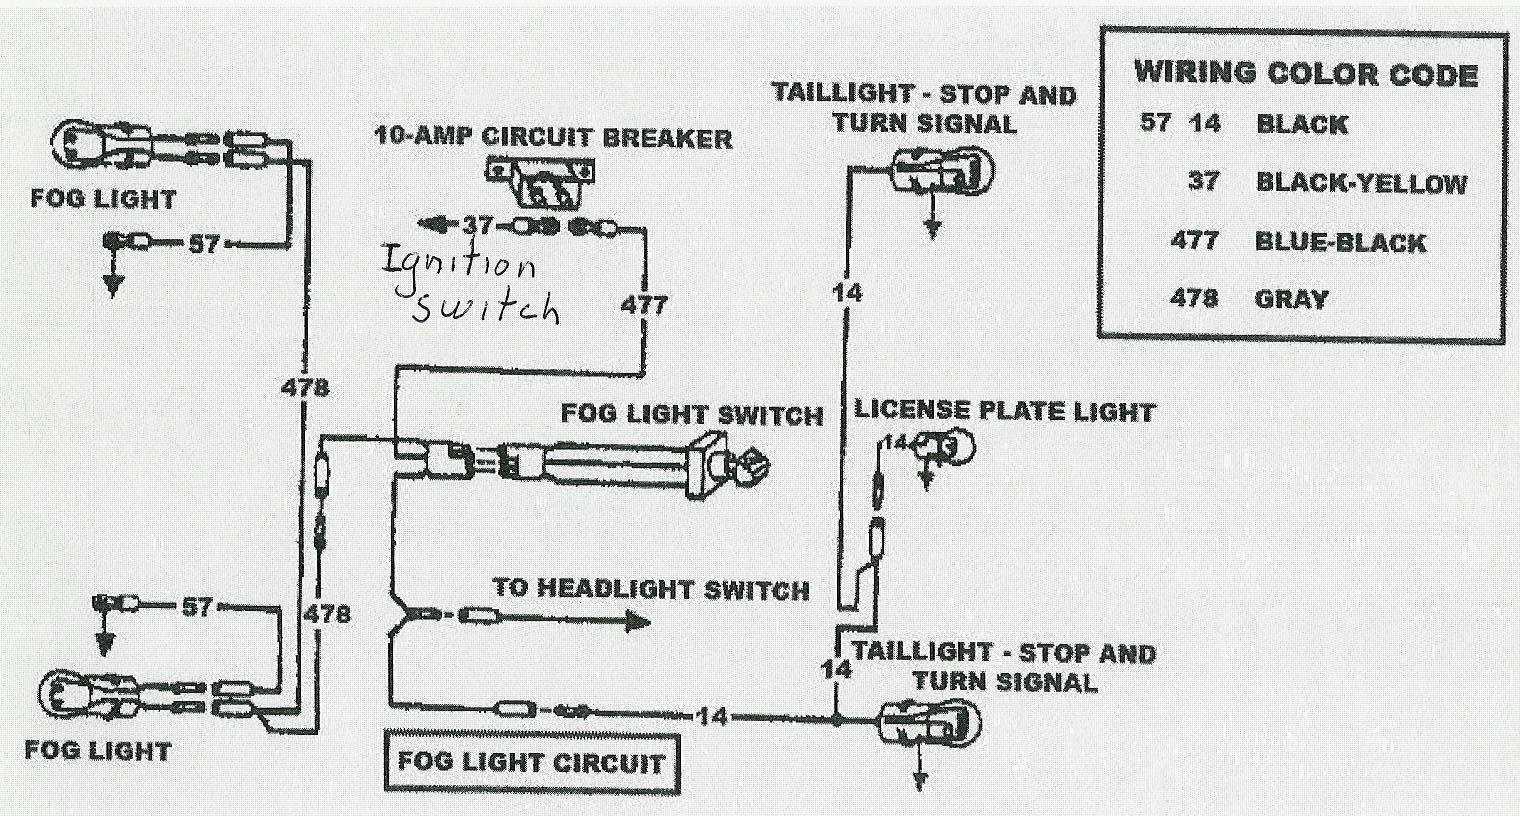 Universal Fog Light Wiring Diagram Library Harness Unique Wire Mold Electrical Ideas Rh Piotomar Info